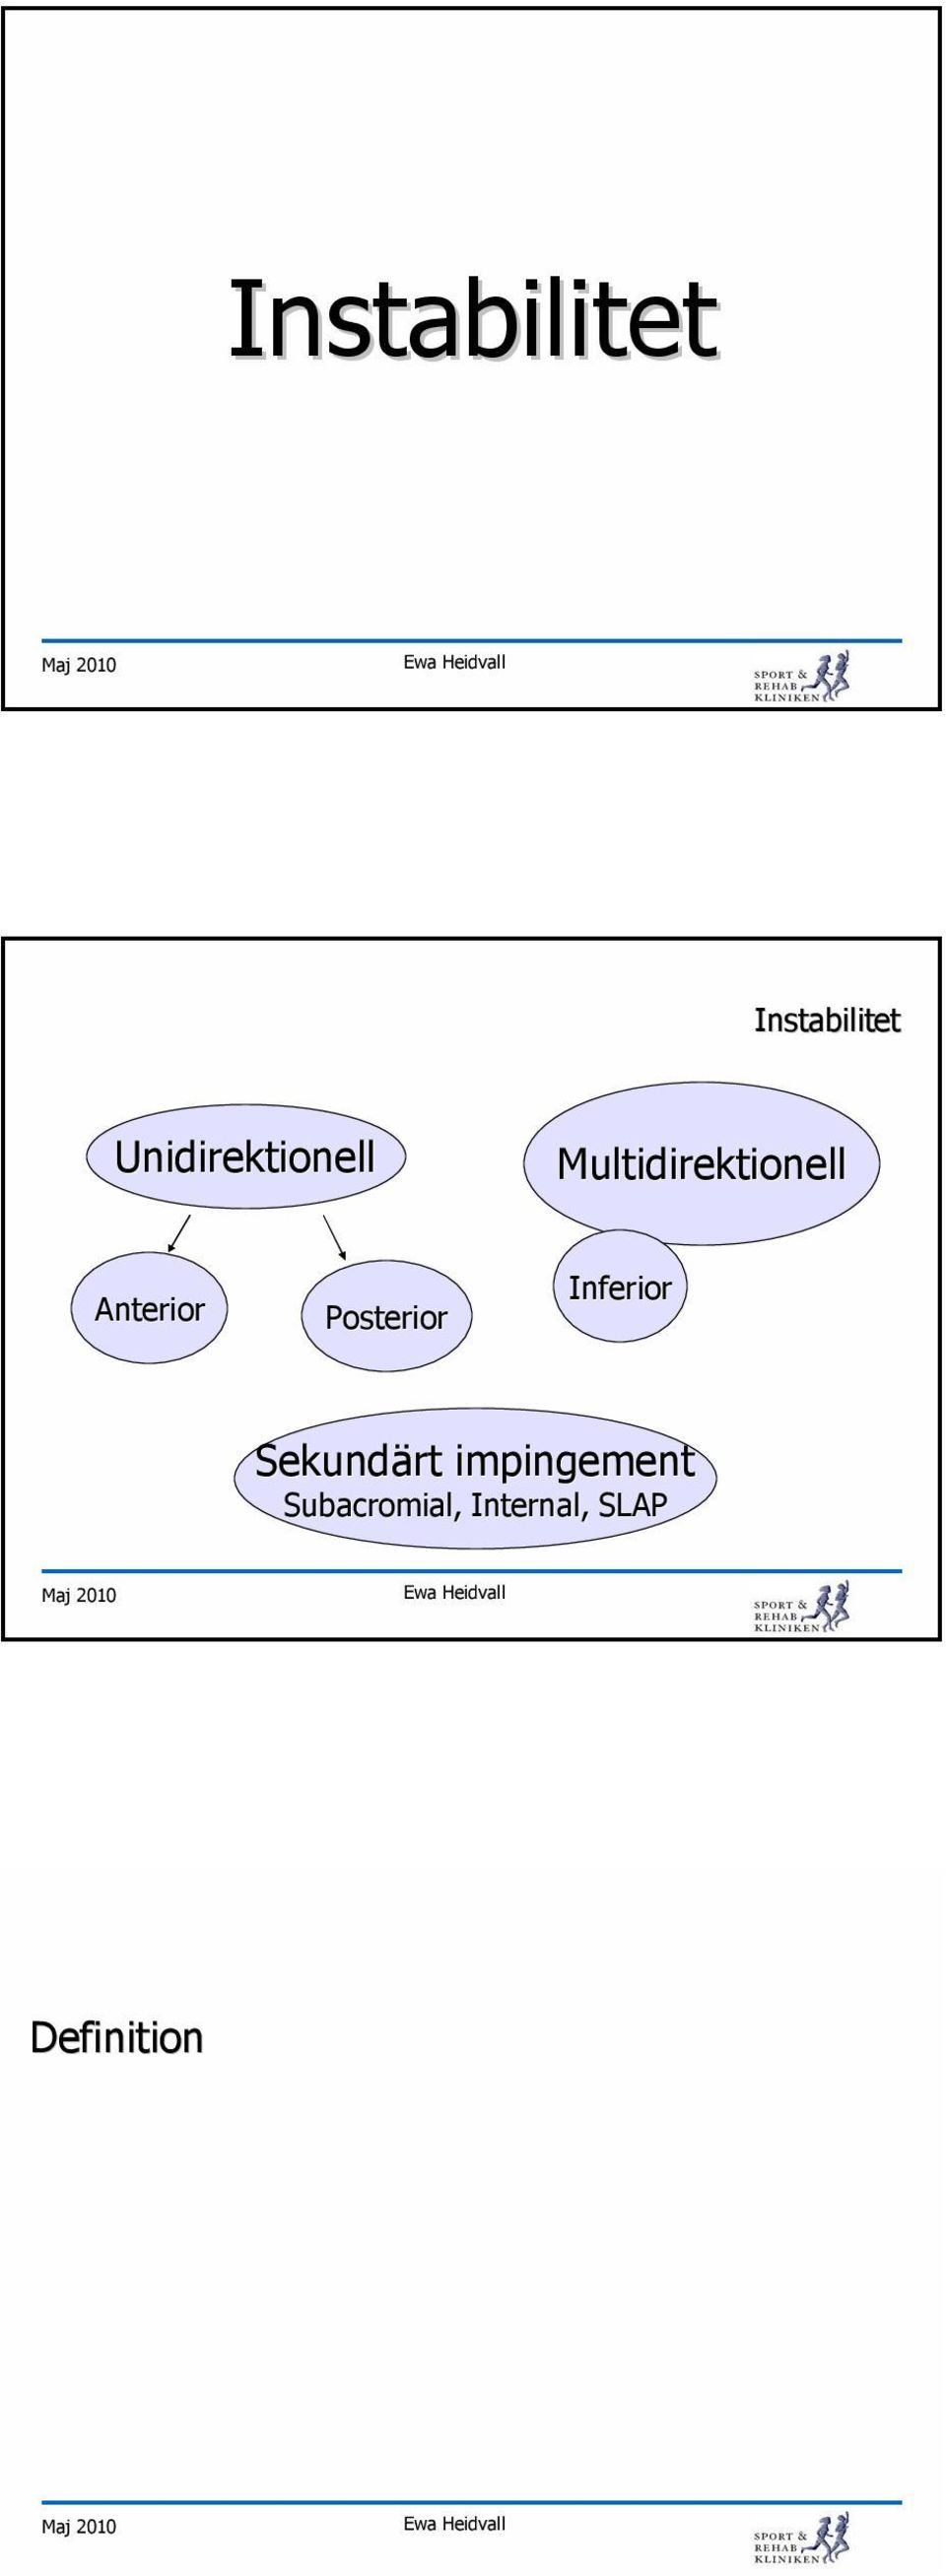 Instabilitet Definition Laxitet = ökad translation utan symtom